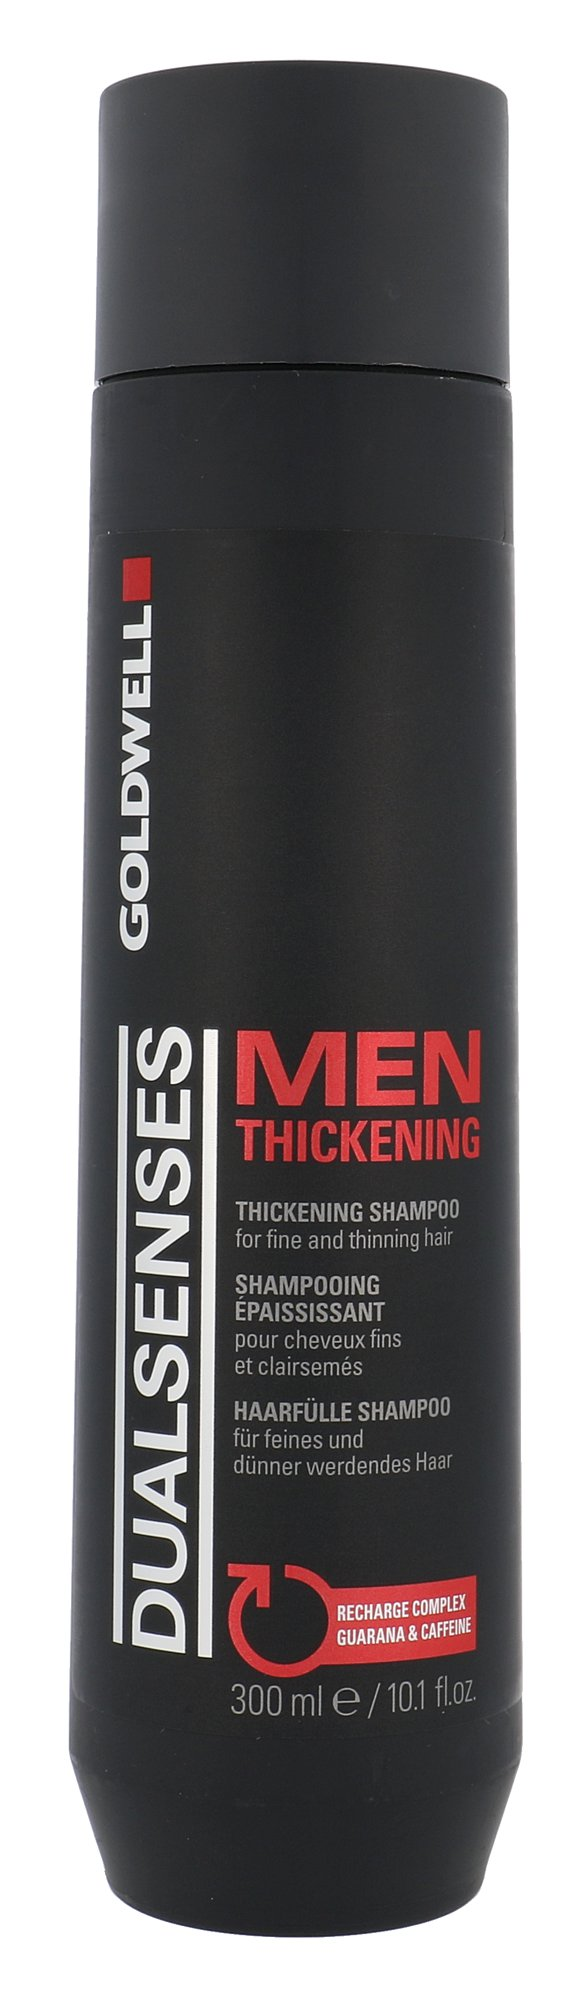 Goldwell Dualsenses For Men Thickening, Sampon 300ml